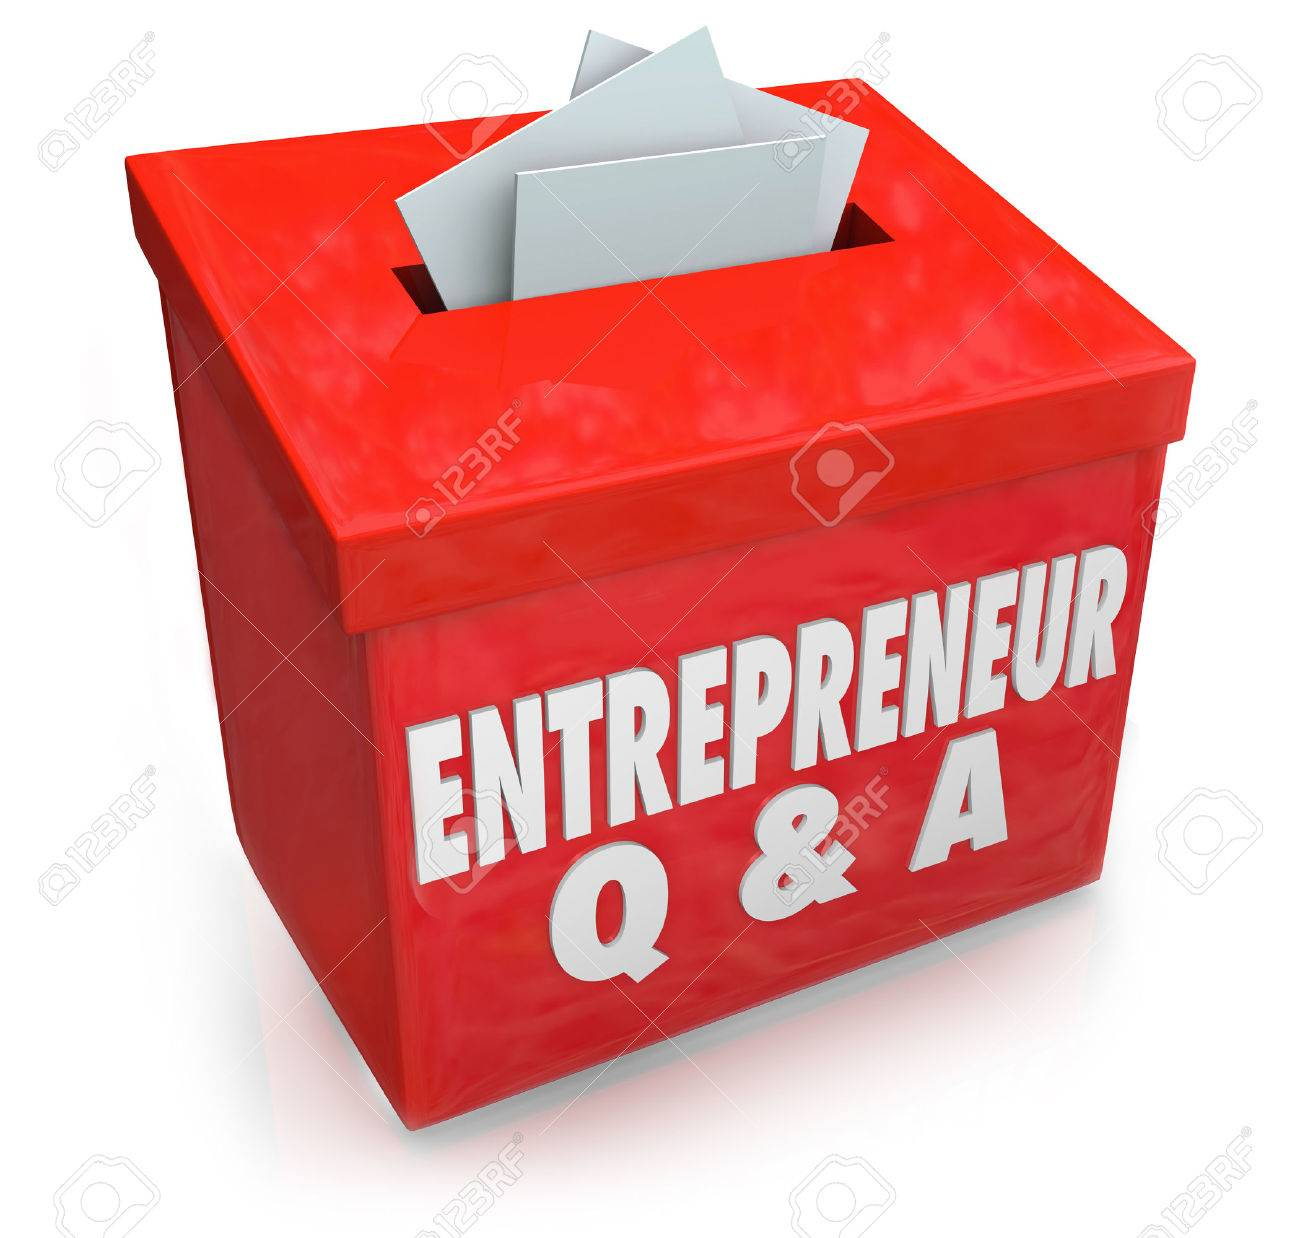 entrepreneur q a words on a box collecting your questions on entrepreneur q a words on a box collecting your questions on how to run a